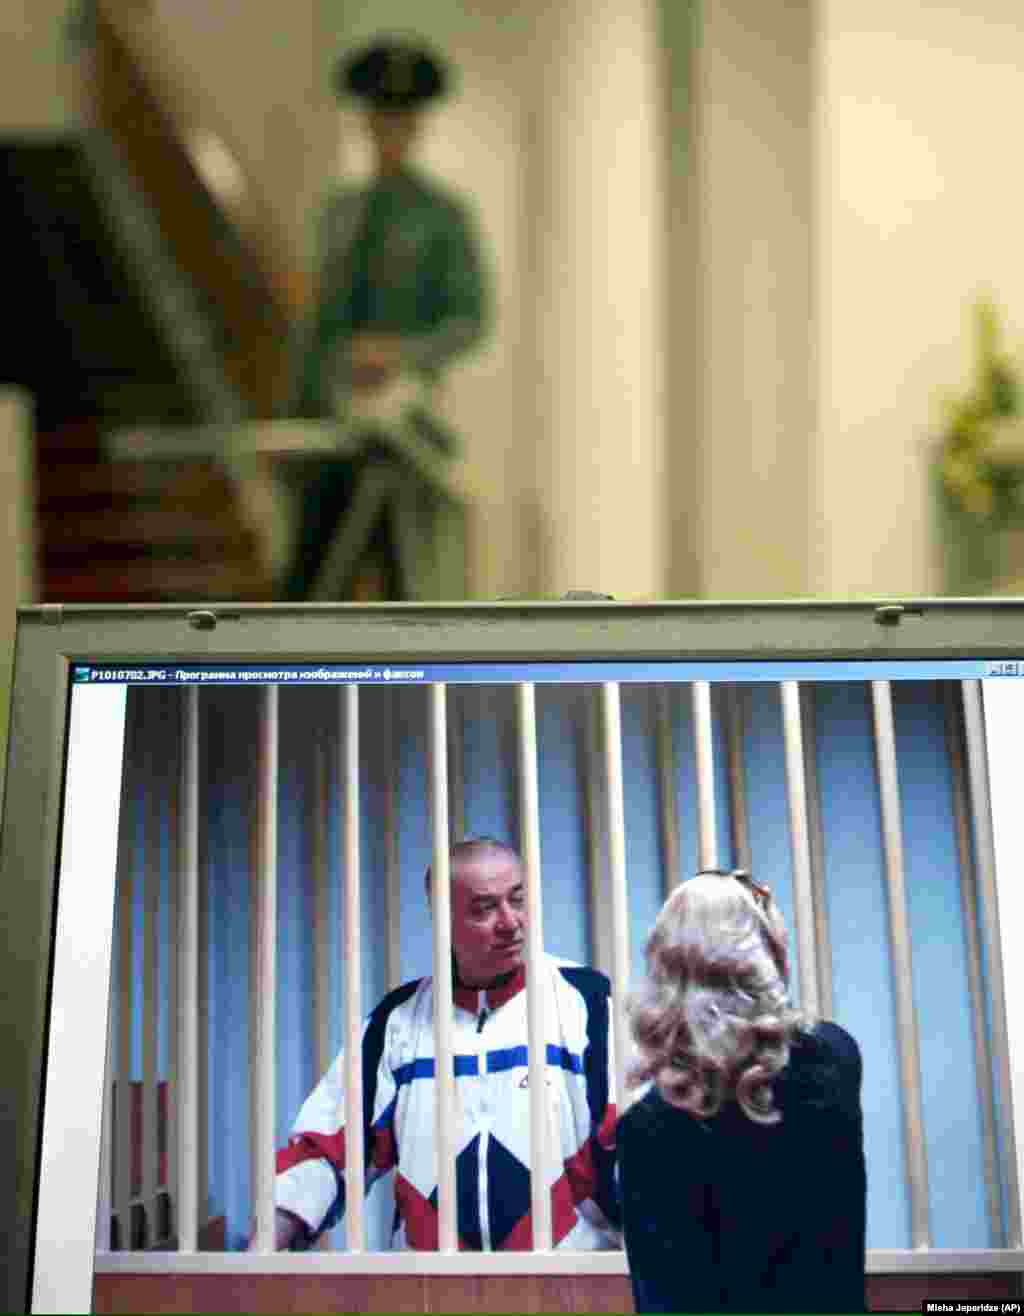 Russian military intelligence officer Sergei Skripal was among the four people released by Russia. A monitor outside a Moscow courtroom shows Skripal speaking to his lawyer during a 2006 trial in which he was convicted of spying for the U.K. After the spy swap, Skripal ended up living in England, where he was poisoned in 2018, allegedly by two Russian suspects. Skripal and his daughter almost died in the attack. Moscow denied accusations that it tried to kill him.